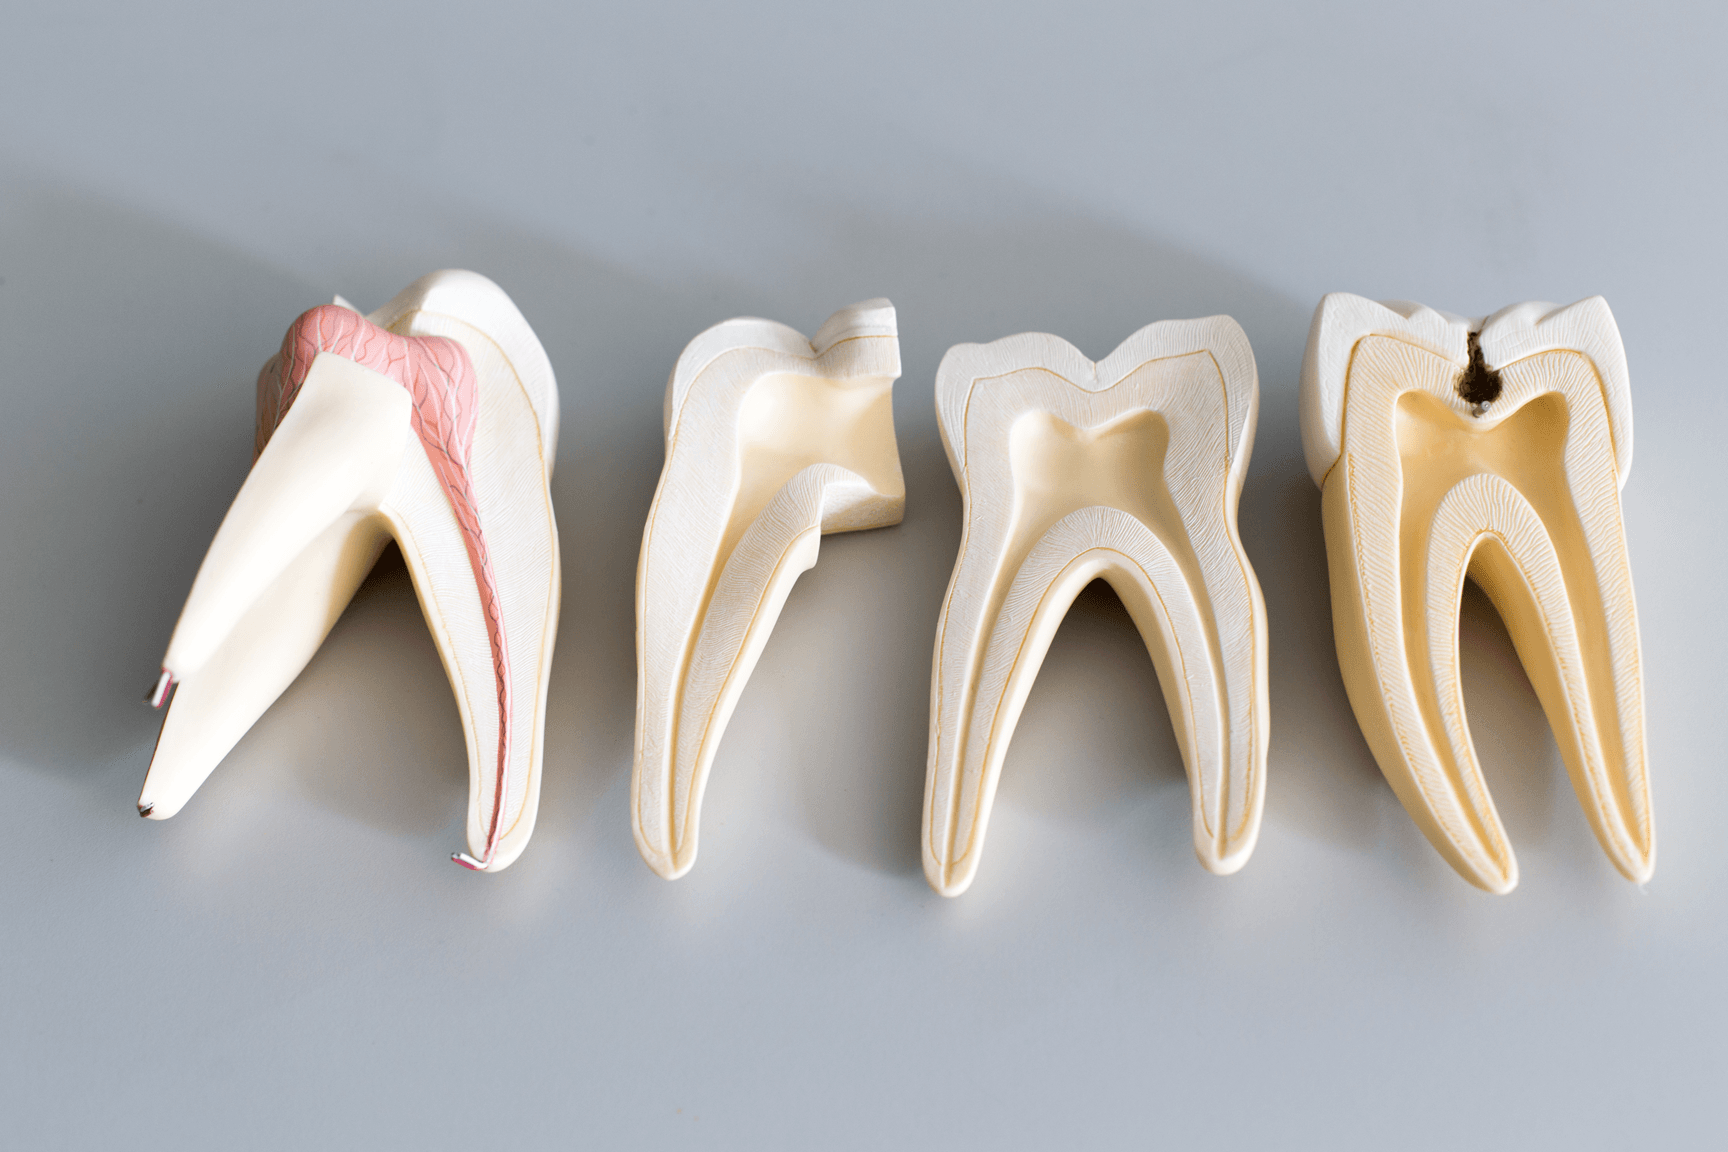 Why Do I Need a Root Canal Treatment If My Tooth Doesn't Hurt?